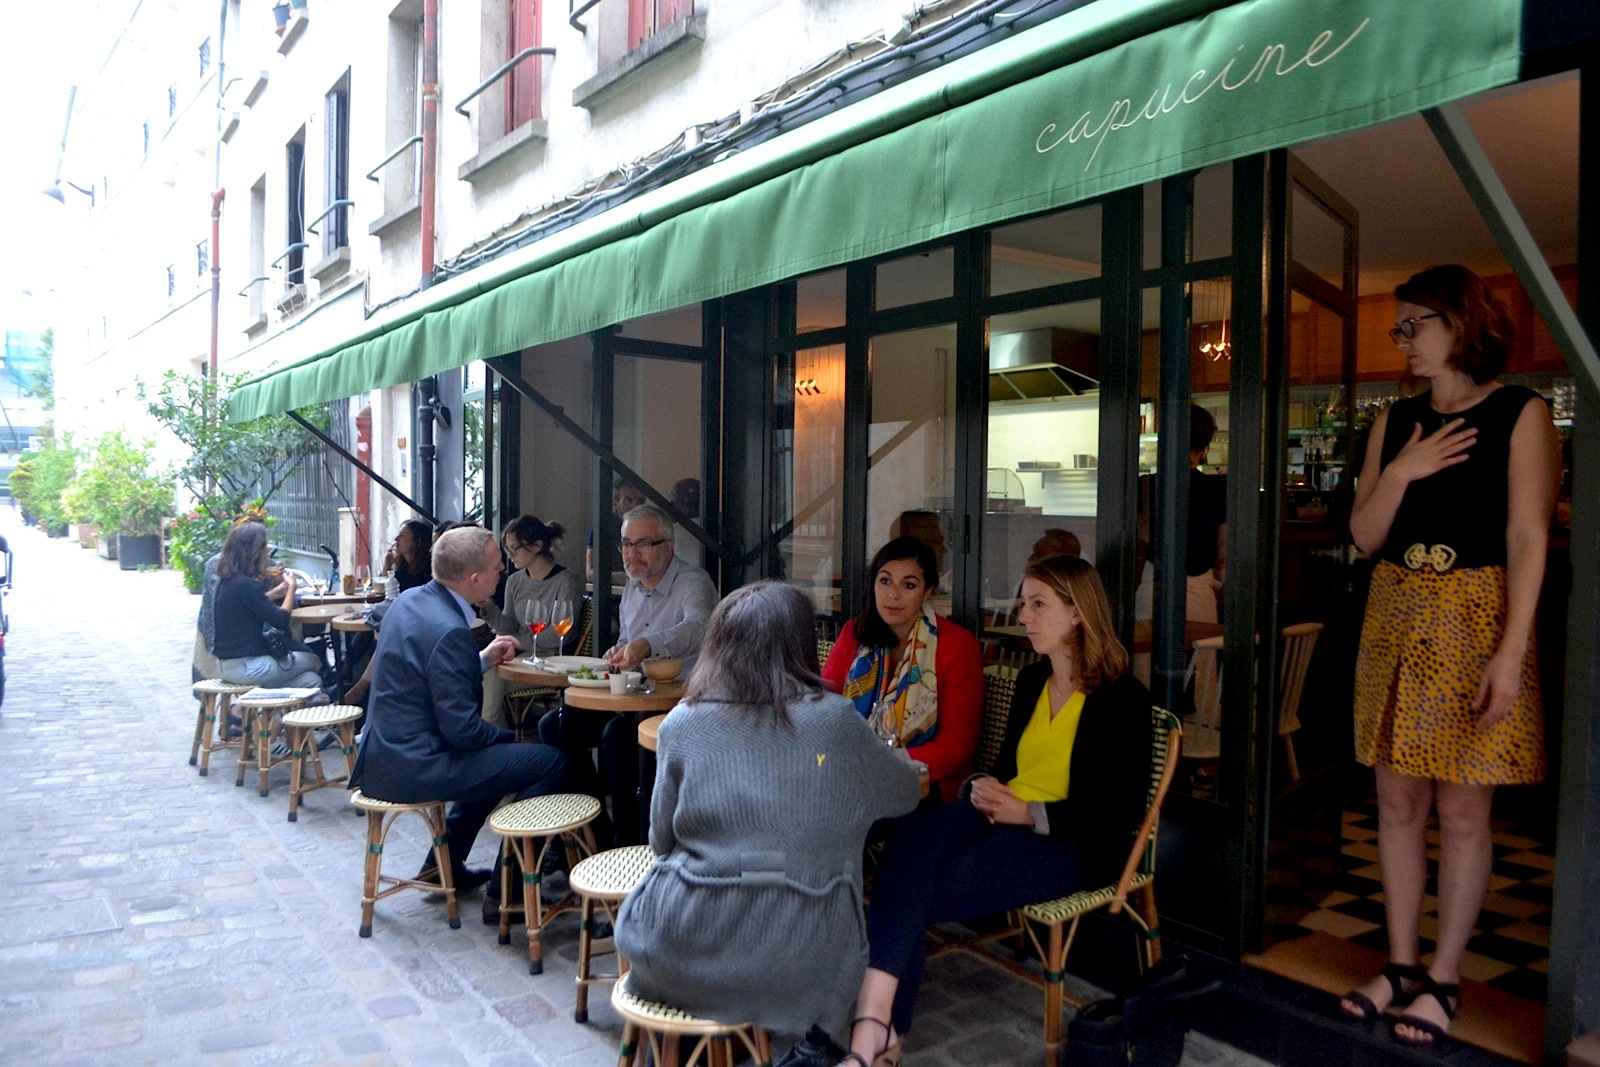 Capucine: An Clandestine Italian Café and Wine Bar in Paris' Faubourg Saint-Antoine